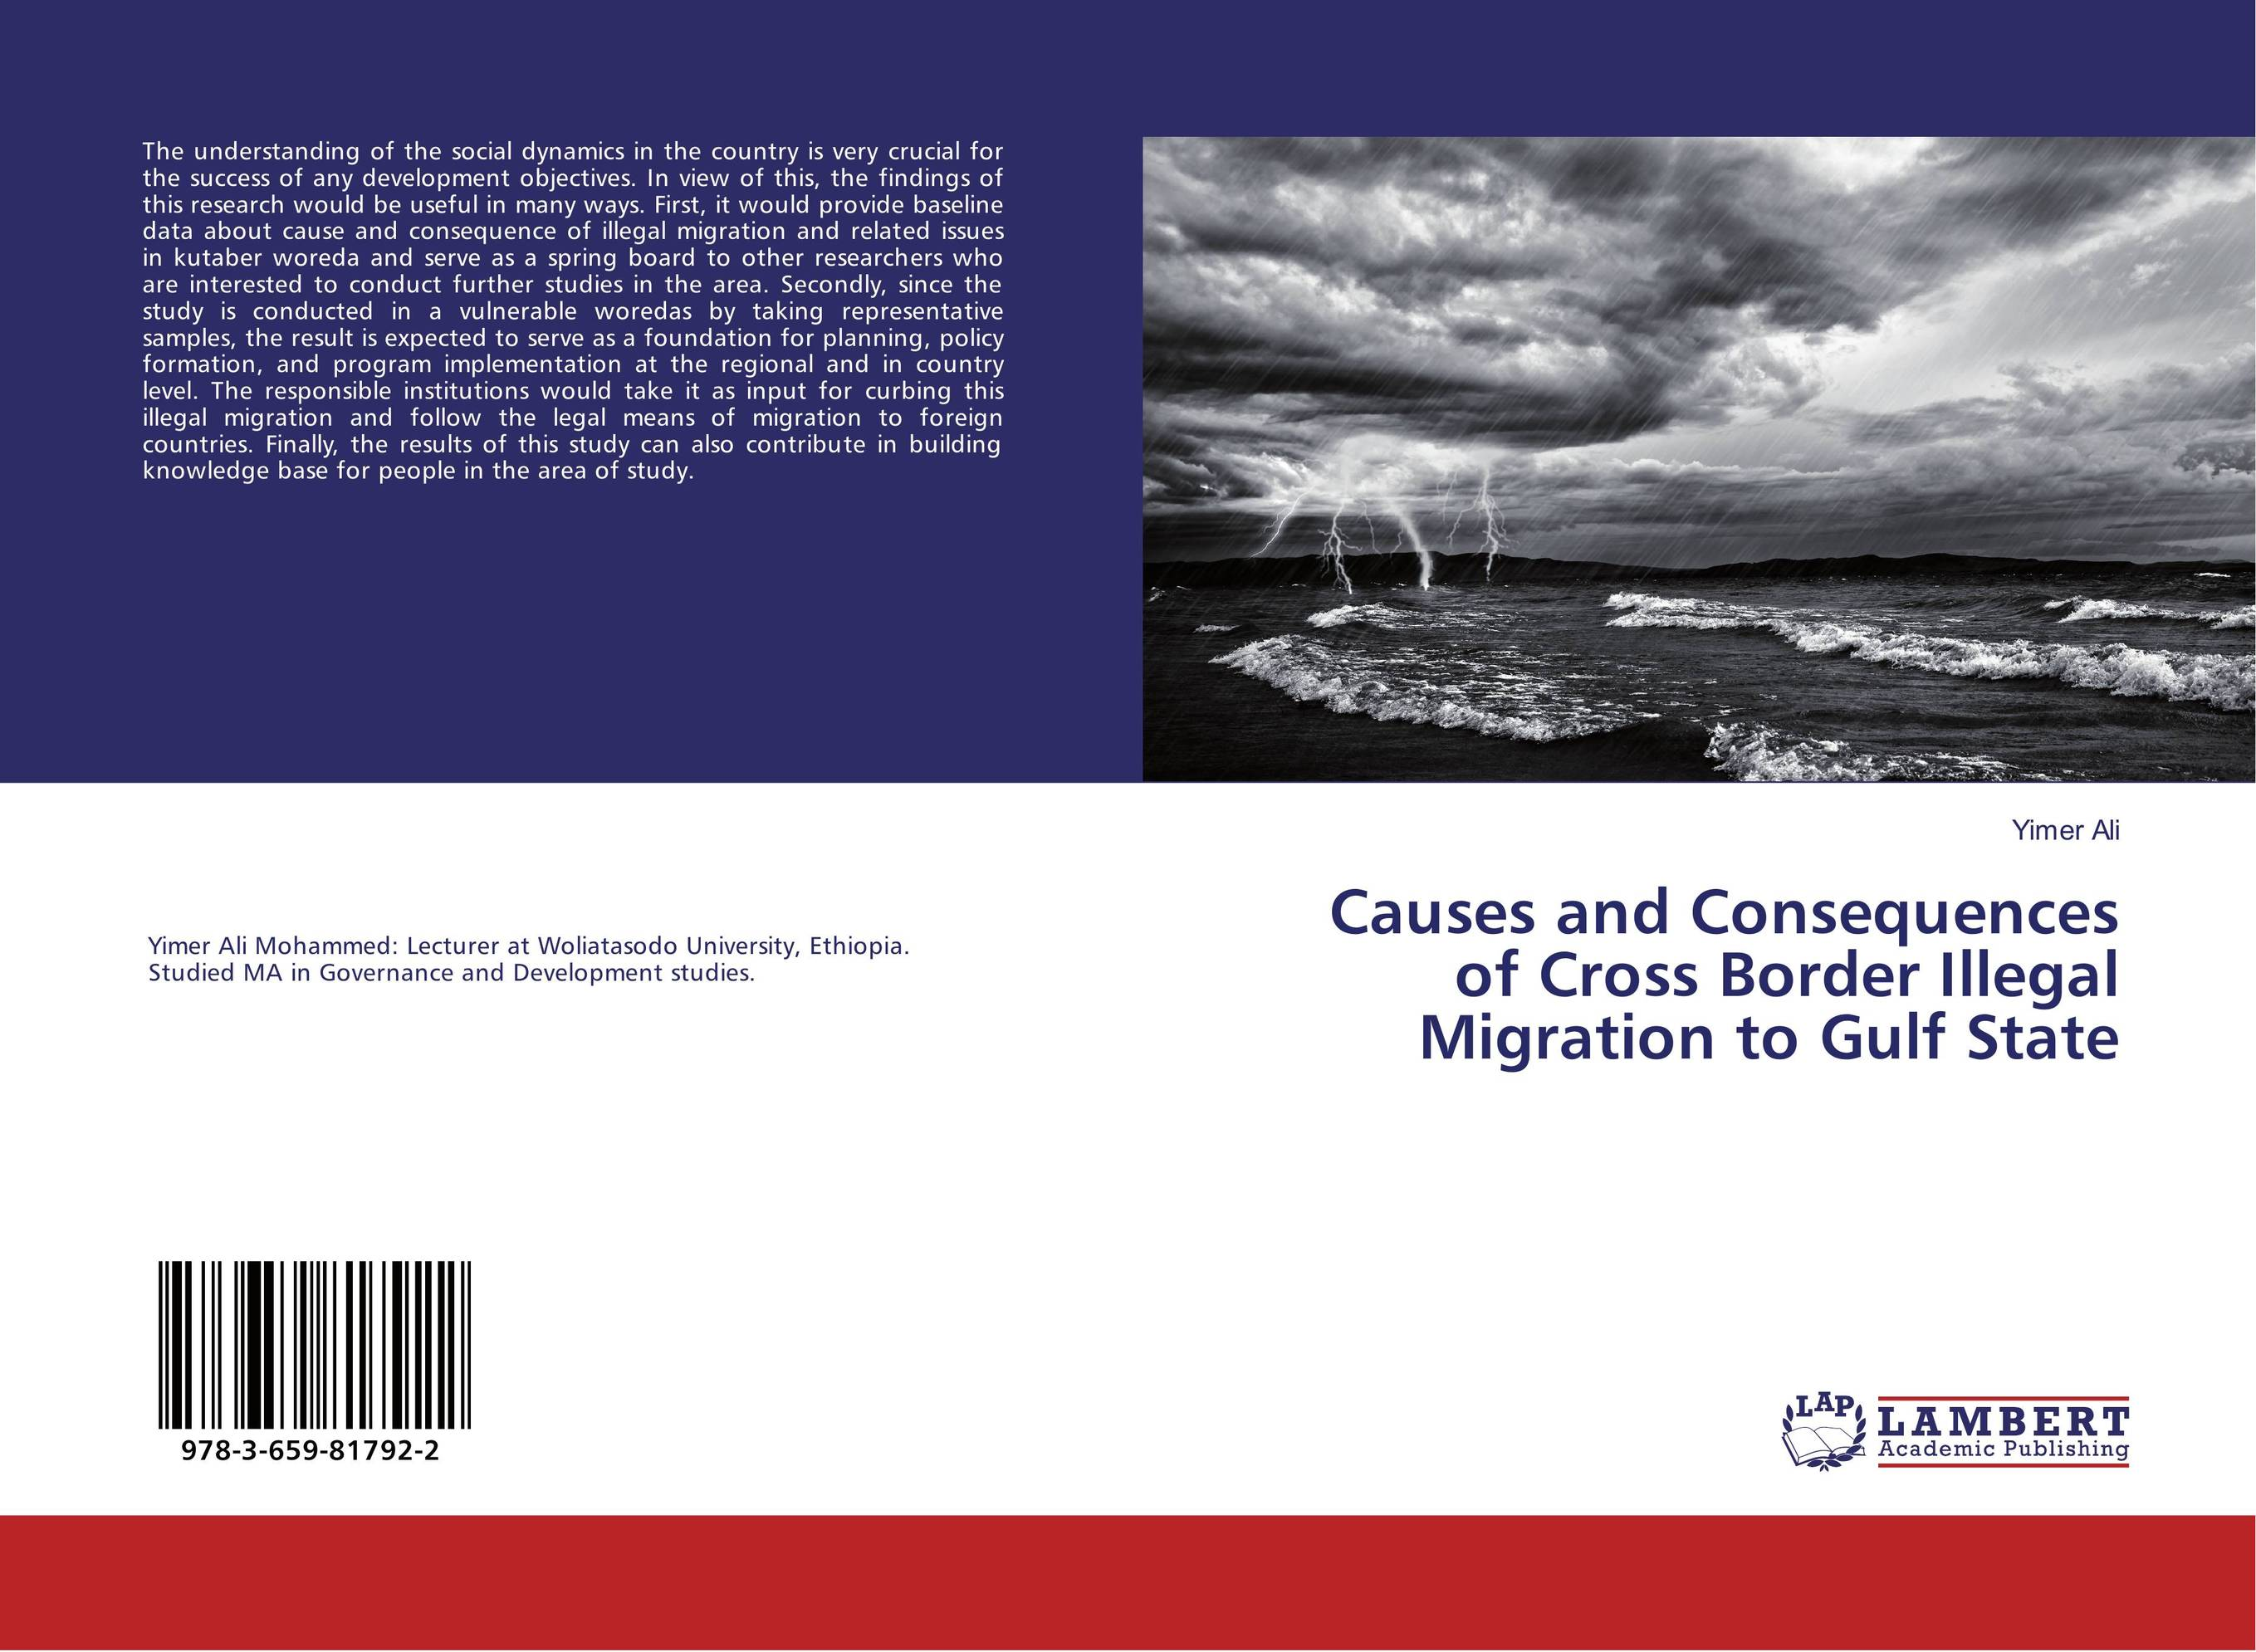 Causes and Consequences of Cross Border Illegal Migration to Gulf State laurens j van mourik the process of cross border entrepreneurship